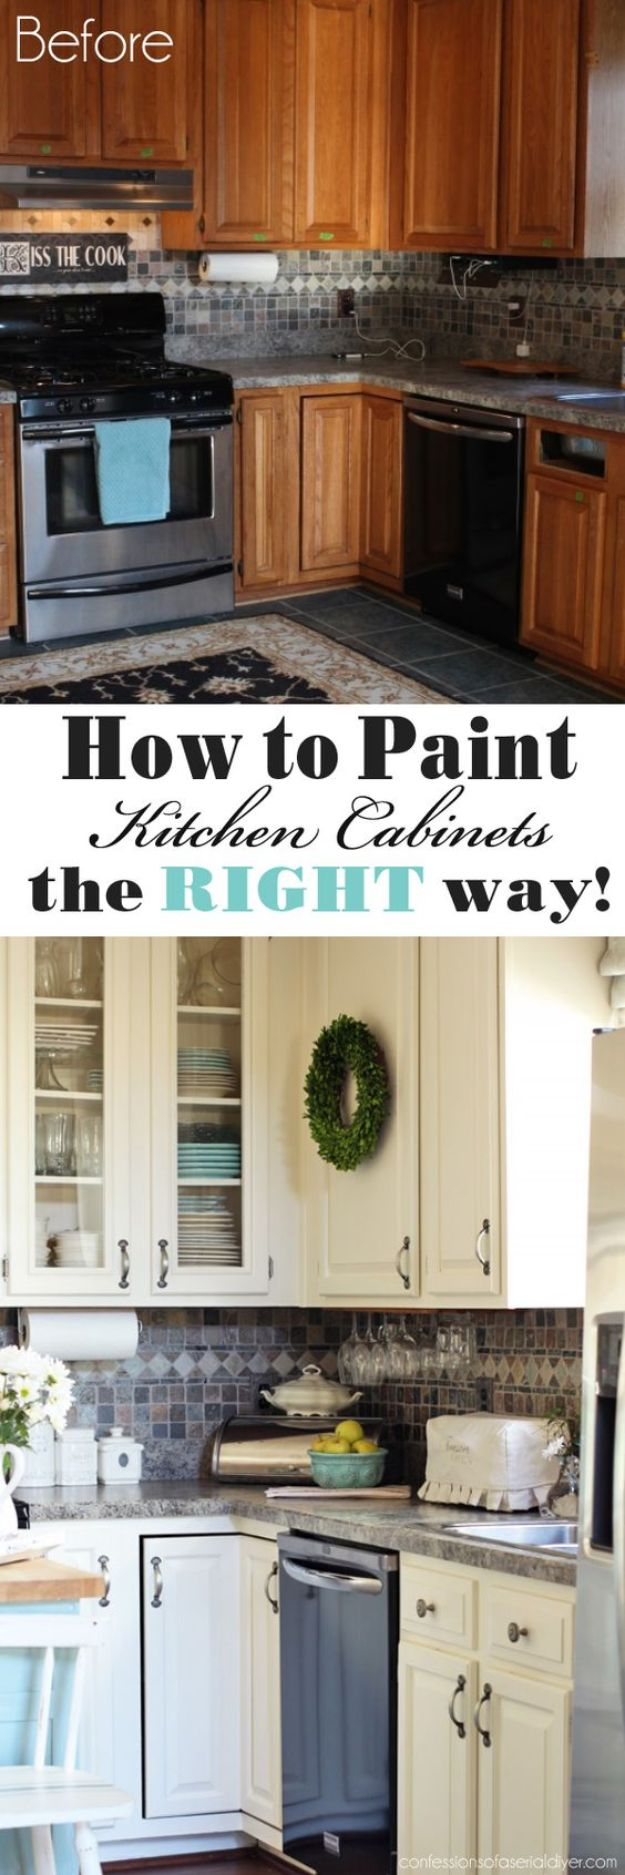 DIY Kitchen Cabinet Ideas - Paint Your Kitchen Cabinets - Makeover and Before and After - How To Build, Plan and Renovate Your Kitchen Cabinets - Painted, Cheap Refact, Free Plans, Rustic Decor, Farmhouse and Vintage Looks, Modern Design and Inexpensive Budget Friendly Projects